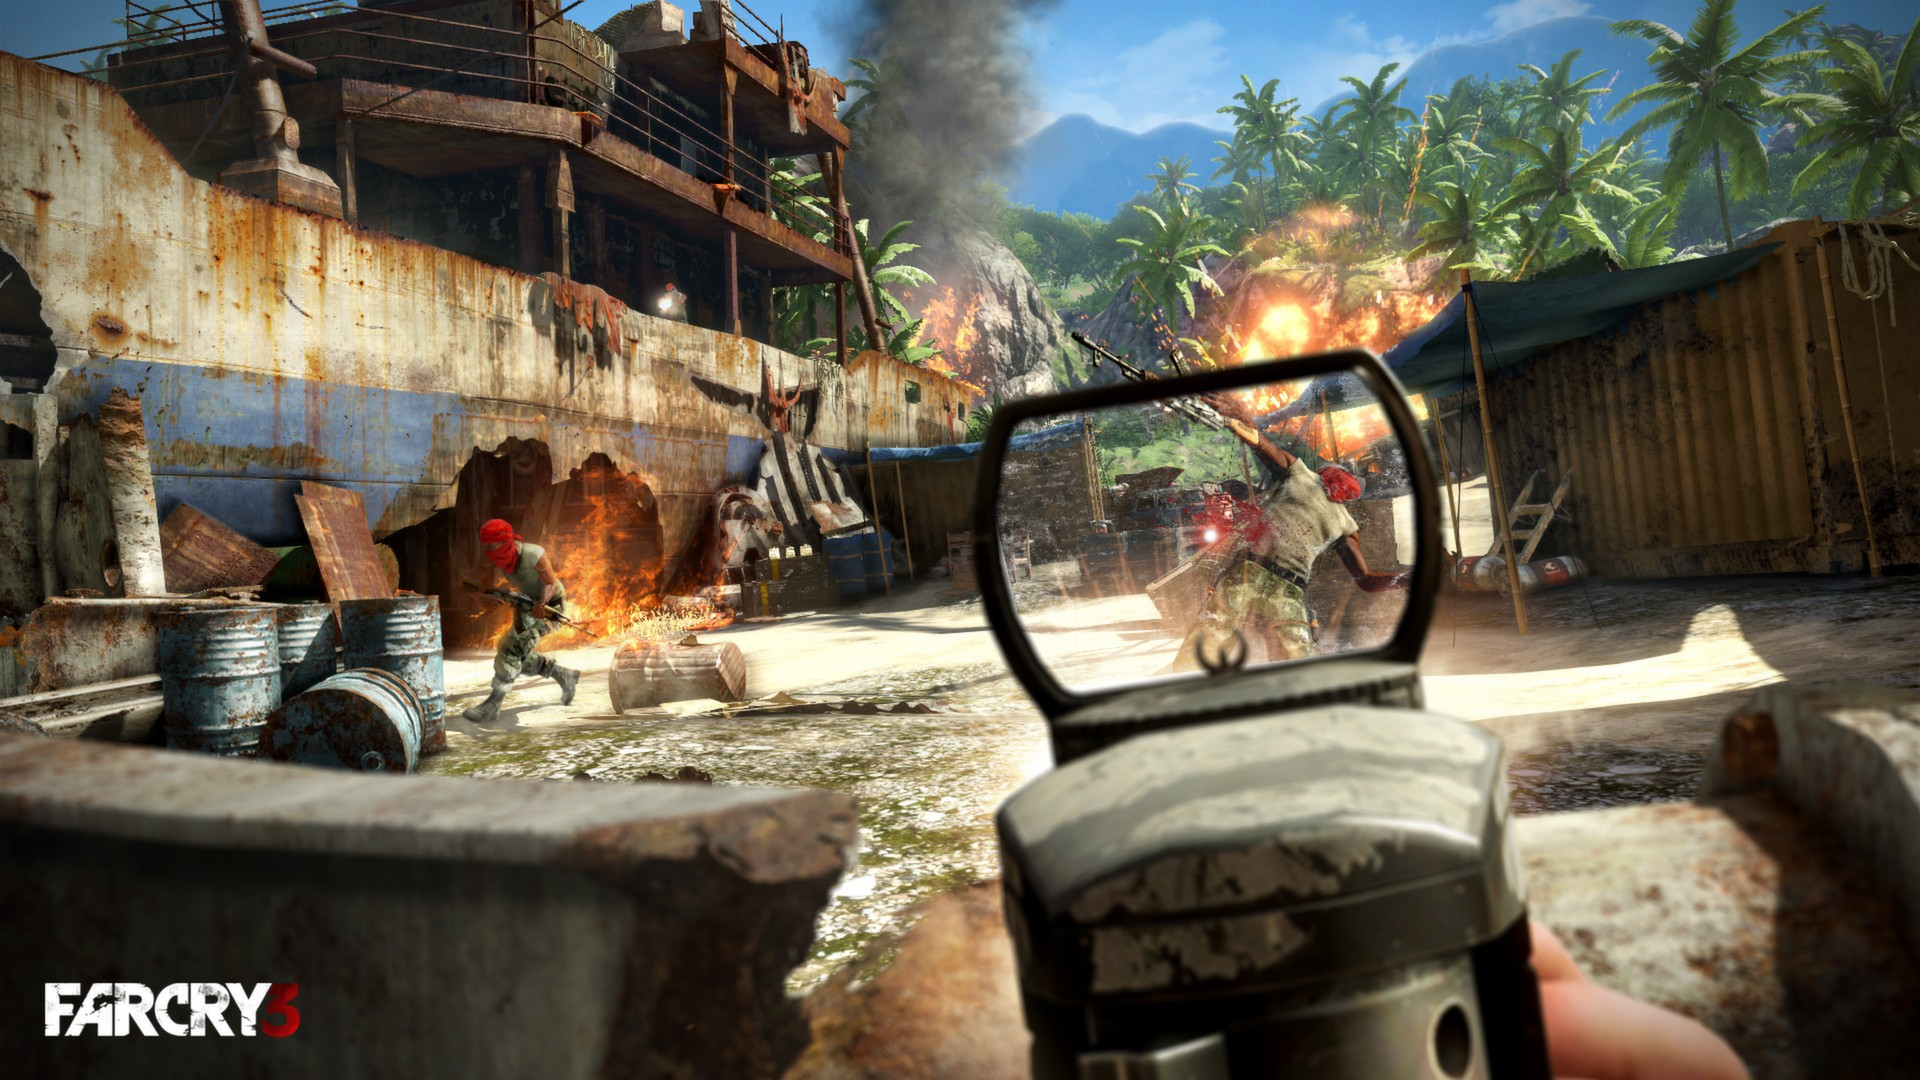 Far Cry 3 On Steam